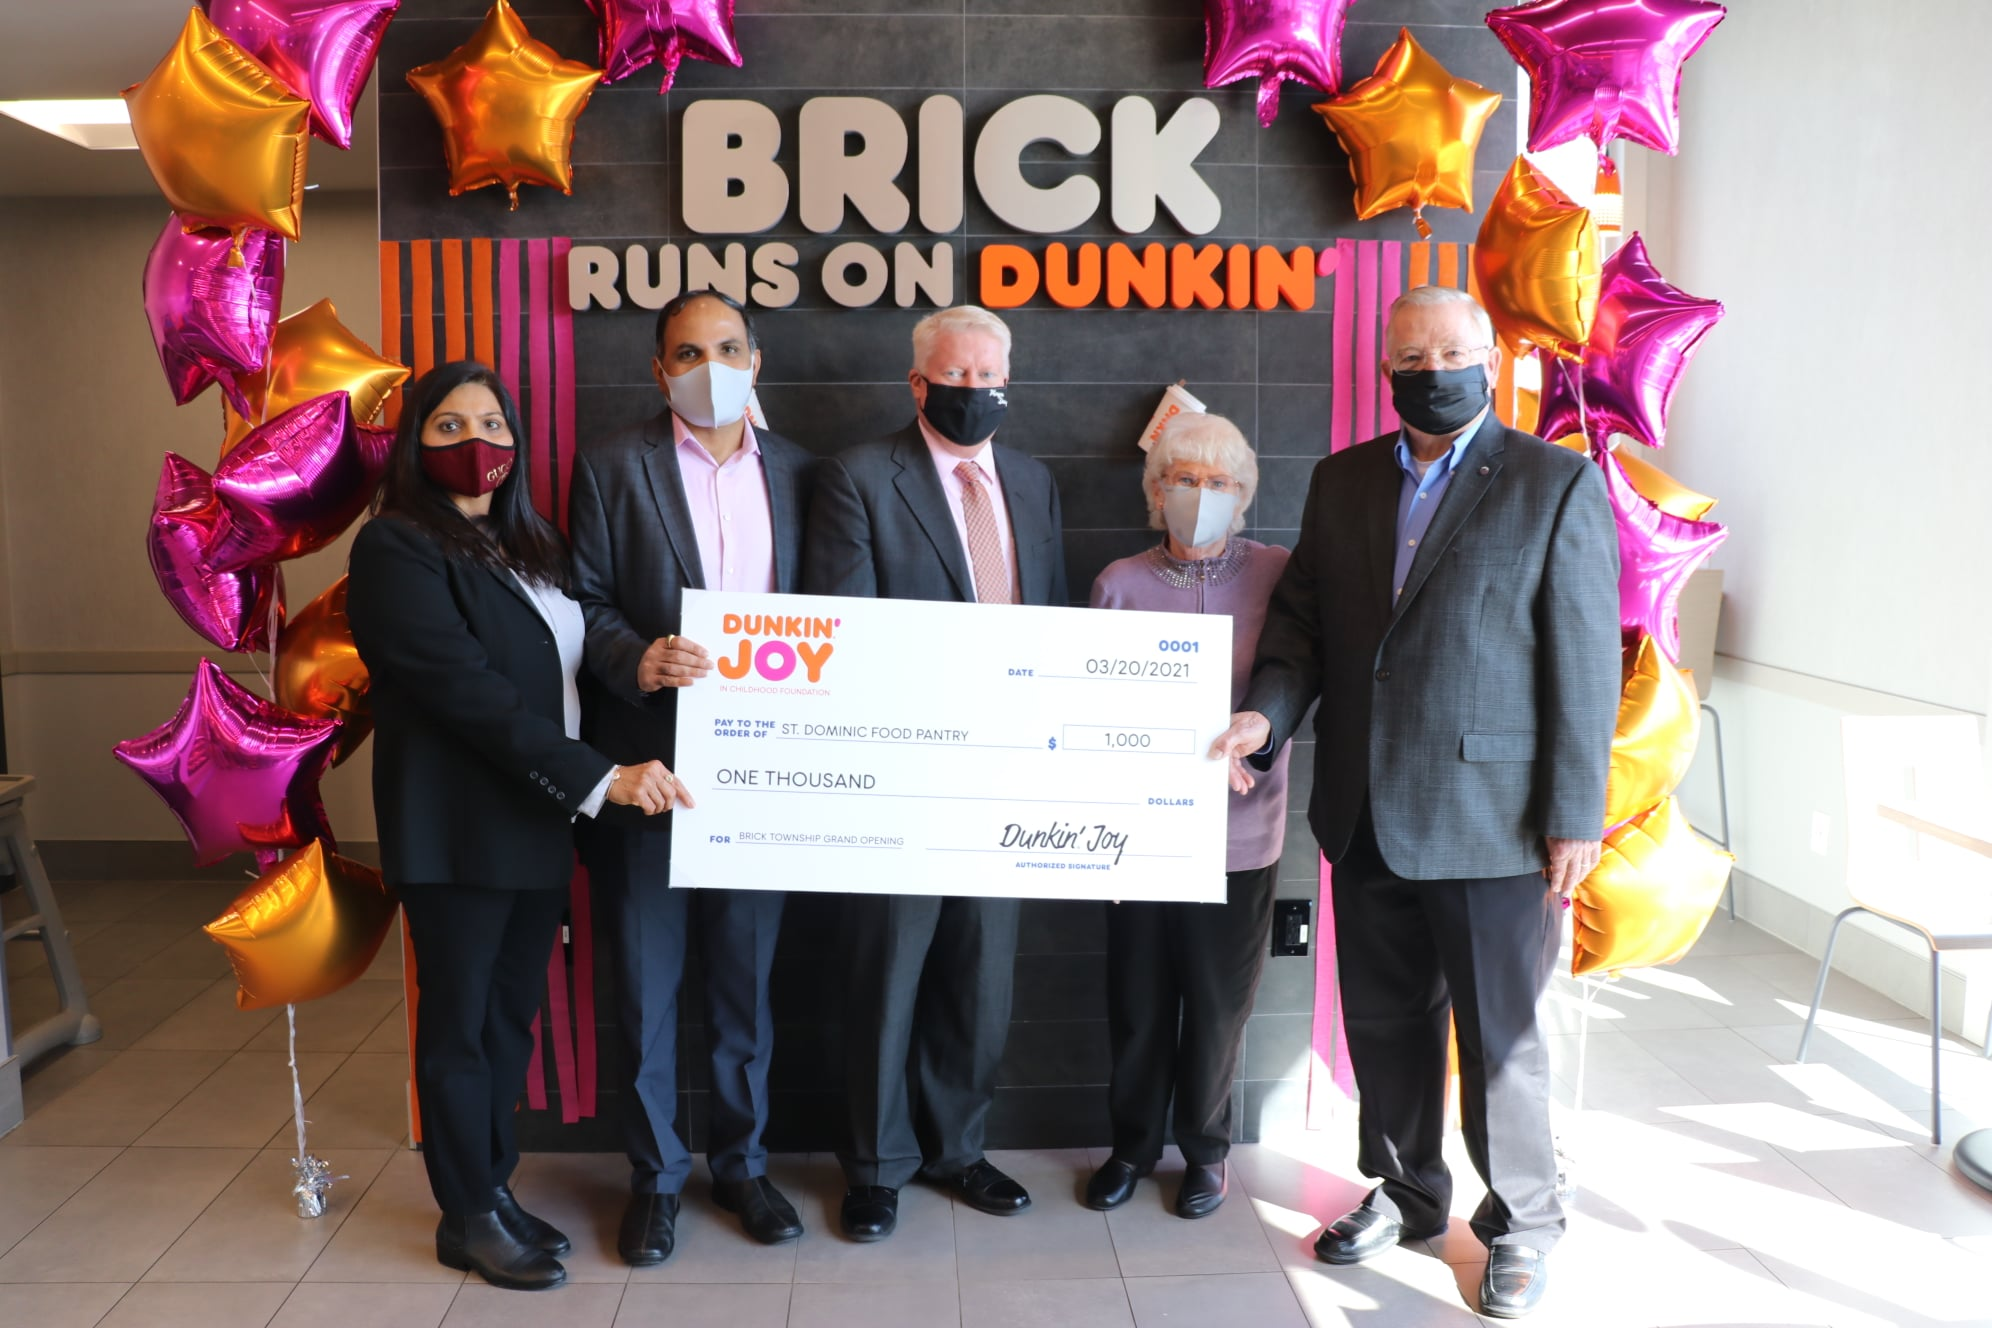 A new Dunkin' Donuts store opens in Brick, March 21, 2021. (Photo: Township of Brick)